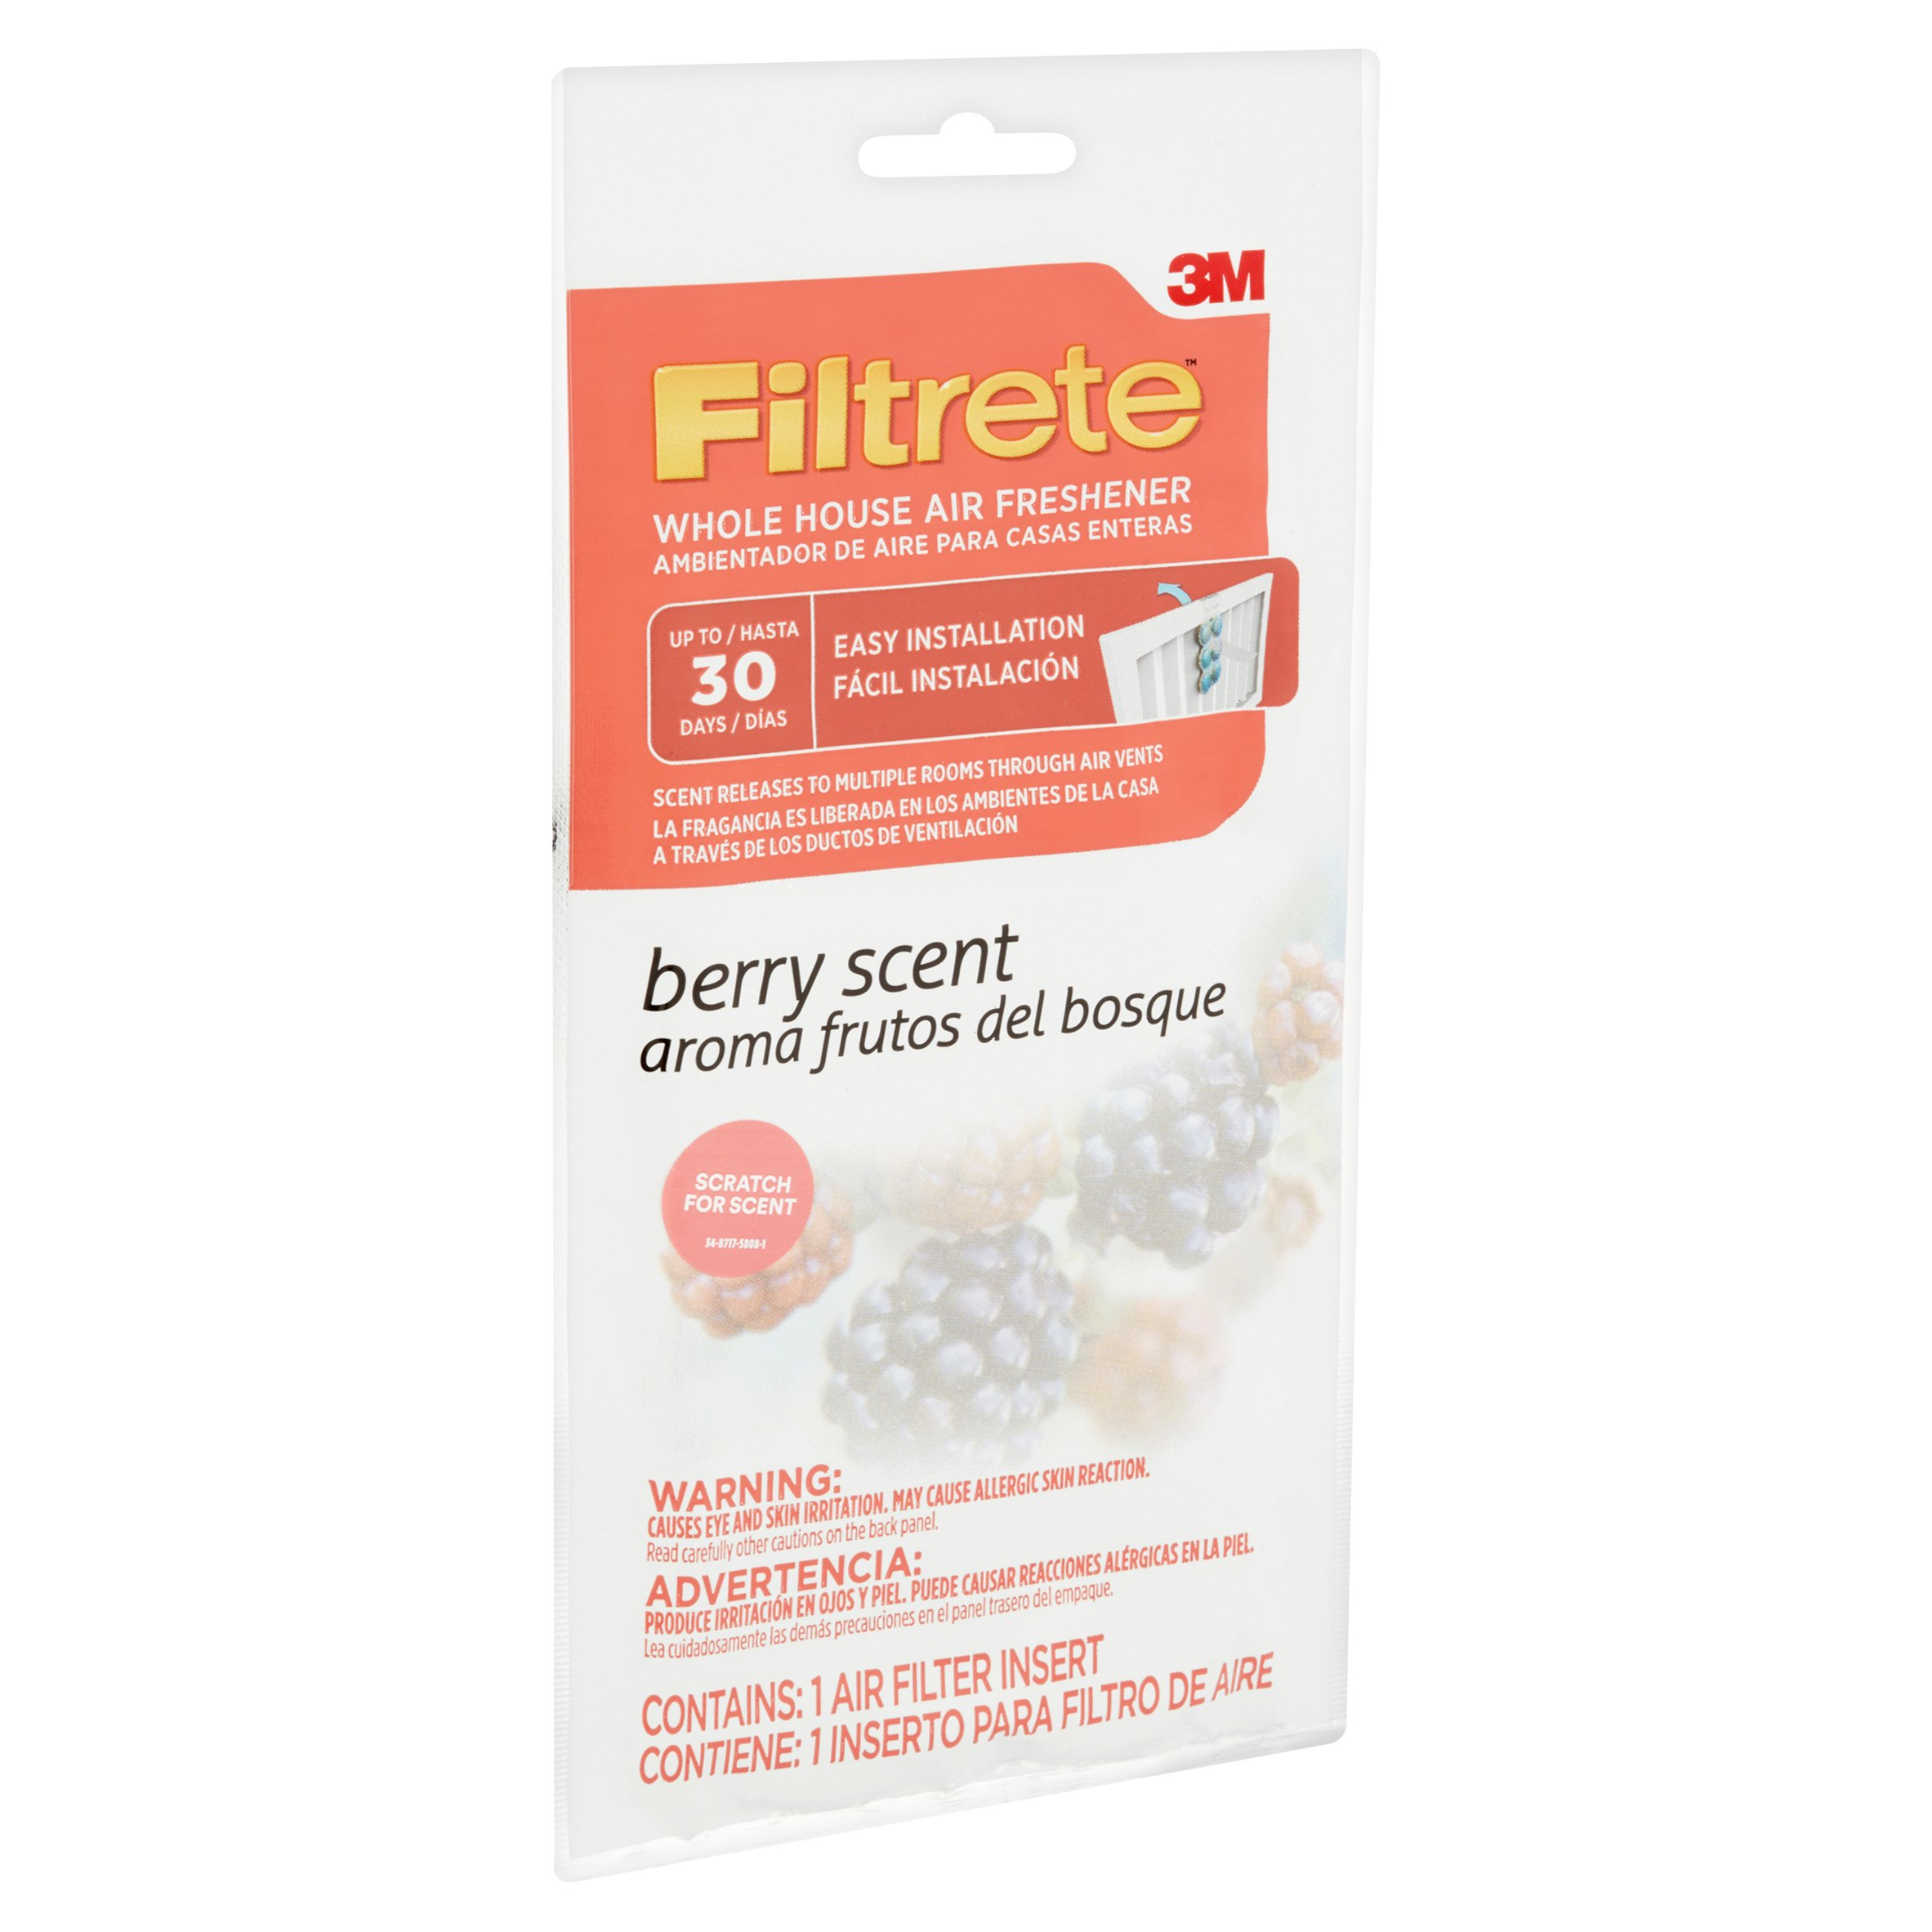 Filtrete Whole House Air Fresheners, Multiple Scents Available   Walmart.com